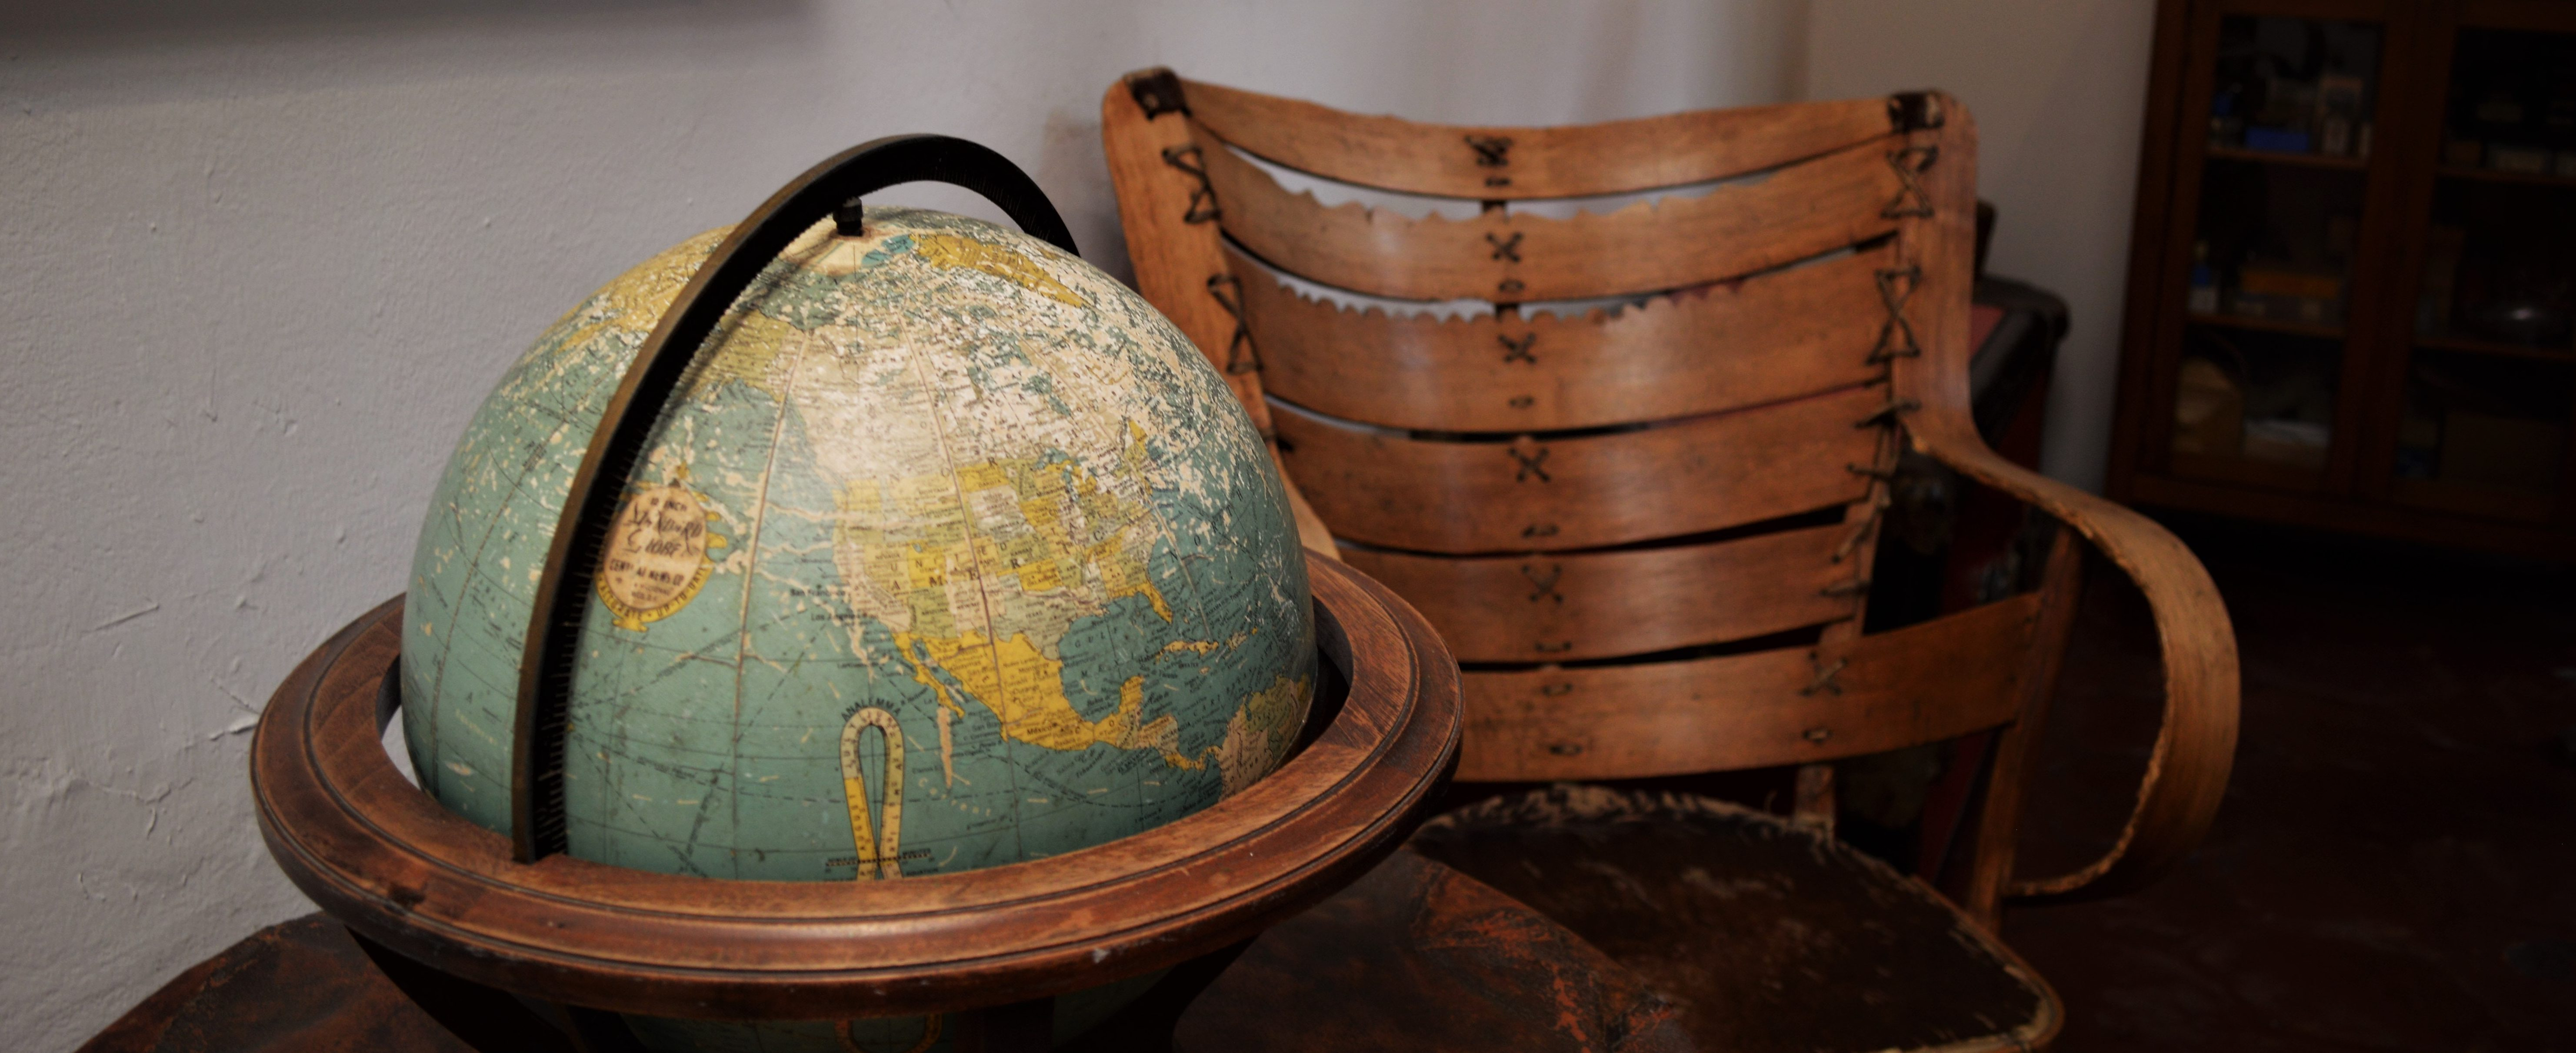 globe-with-empty-chair